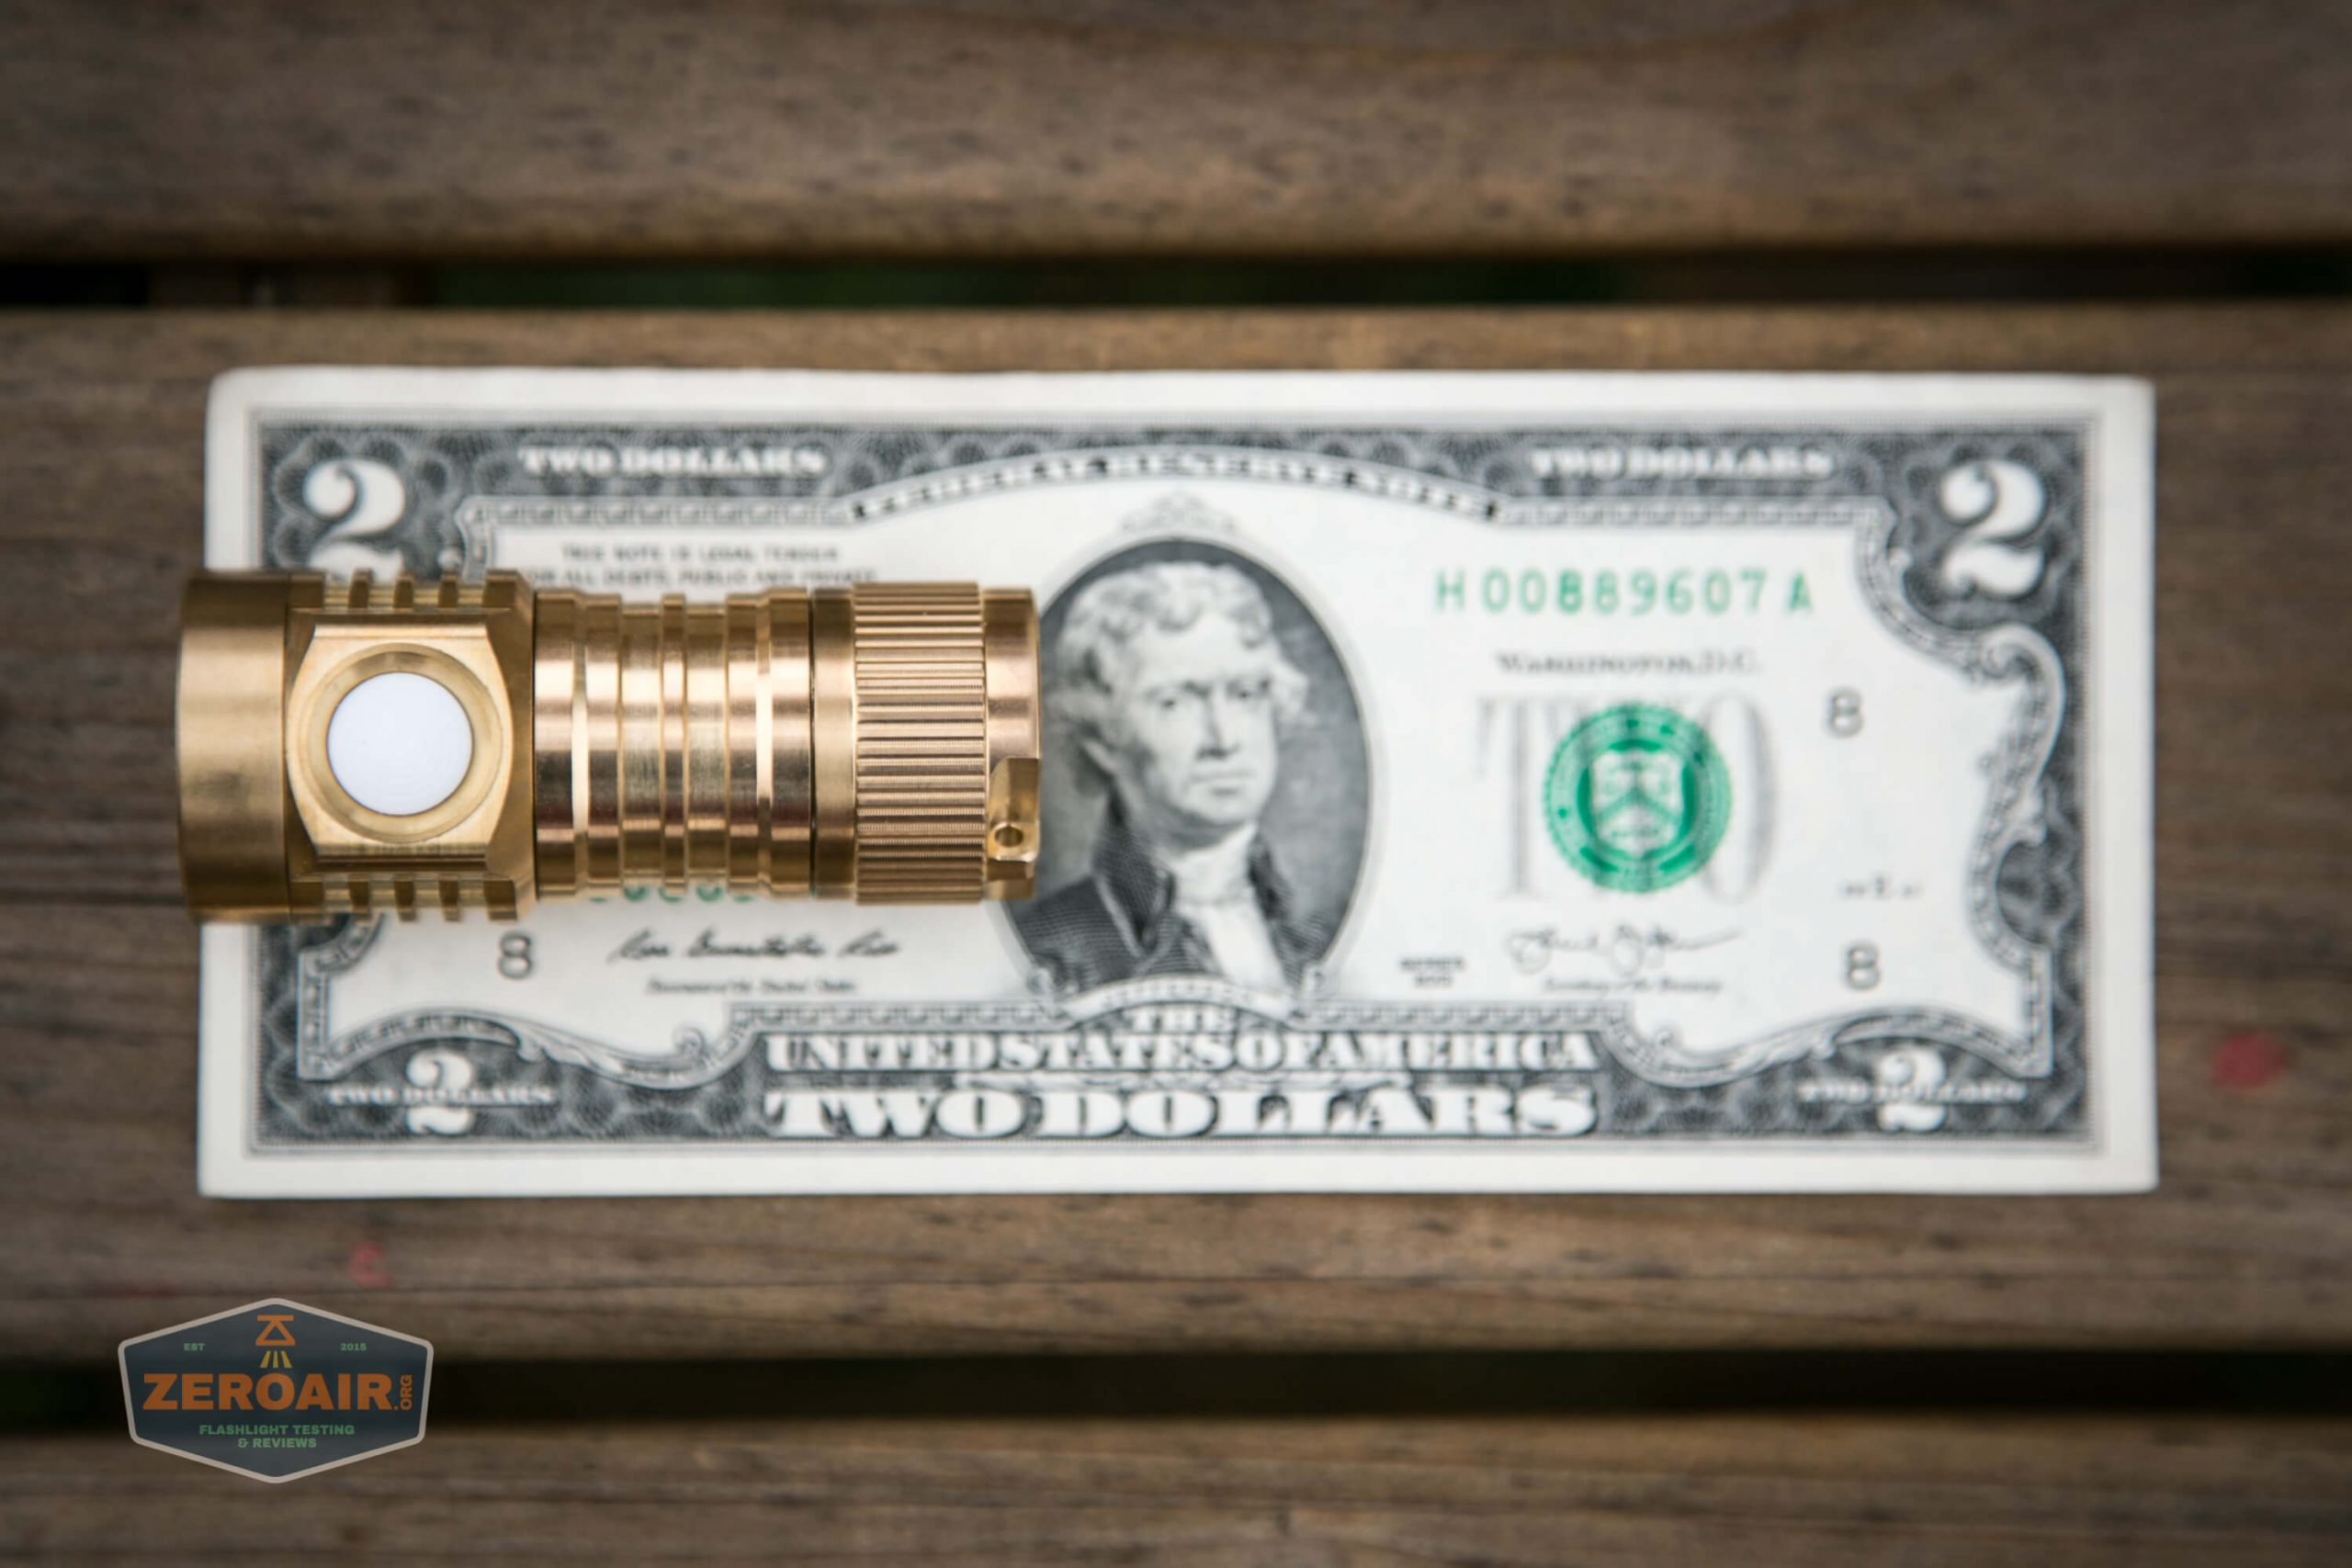 emisar d4v2 brass flashlight nichia e21a 4500K on two dollar bill